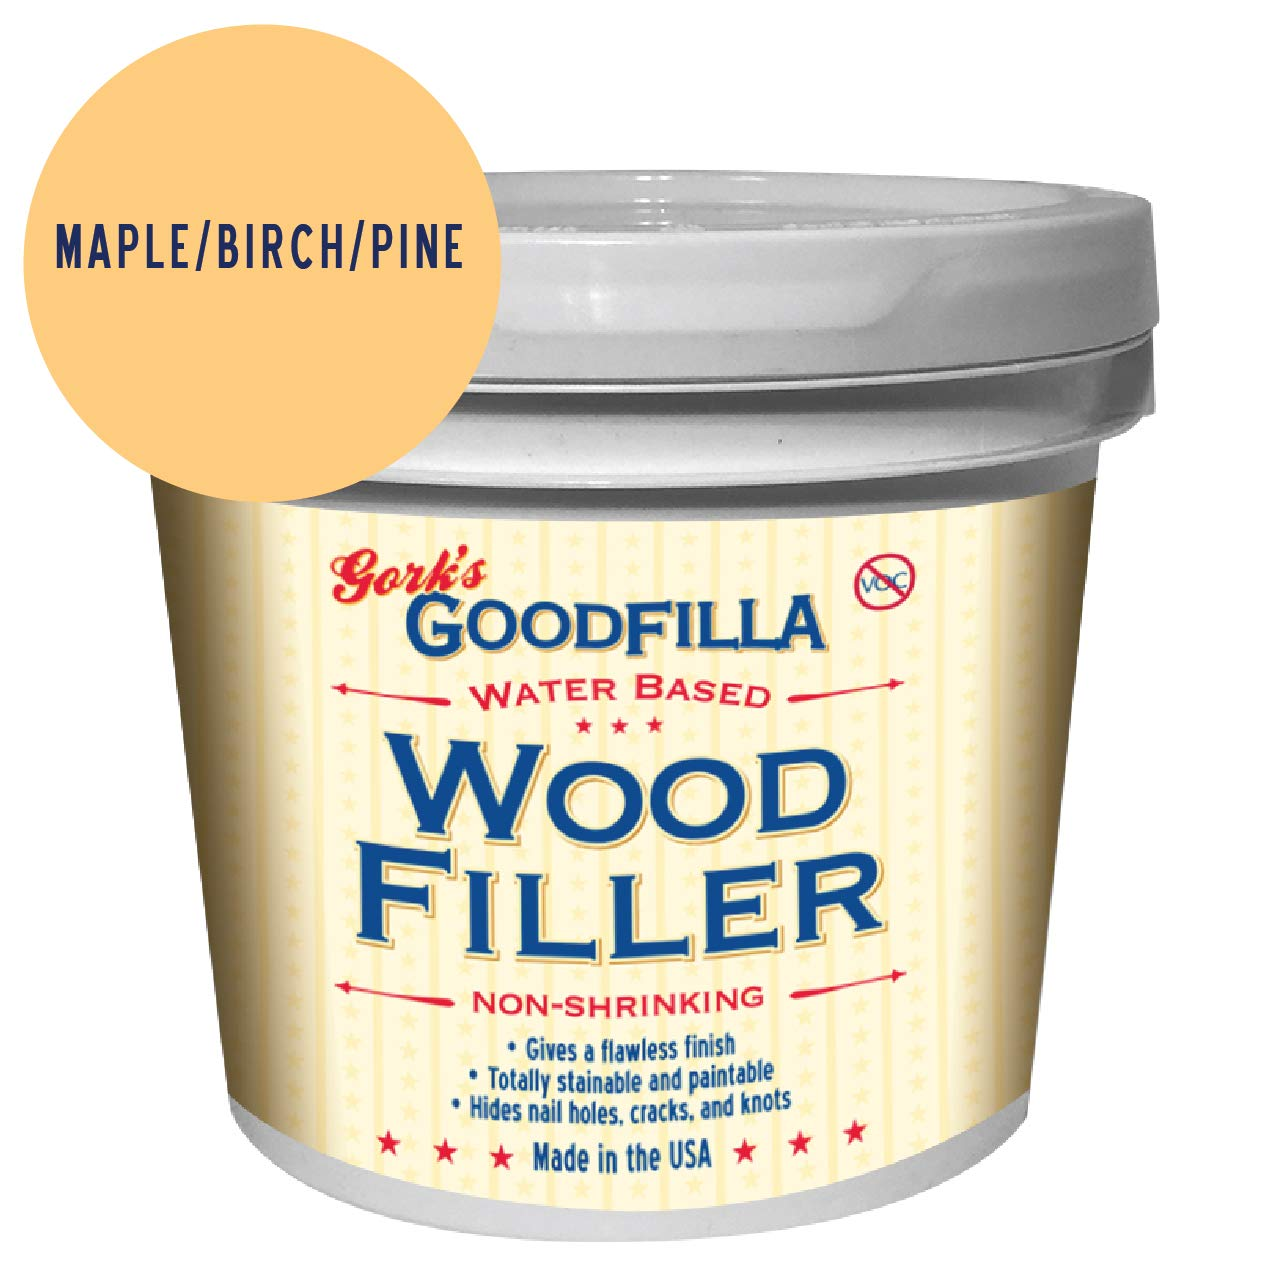 Water-Based Wood & Grain Filler - Maple/Birch/Pine - 1 Gallon by Goodfilla | Replace Every Filler & Putty | Repairs, Finishes & Patches | Paintable, Stainable, Sandable & Quick Drying